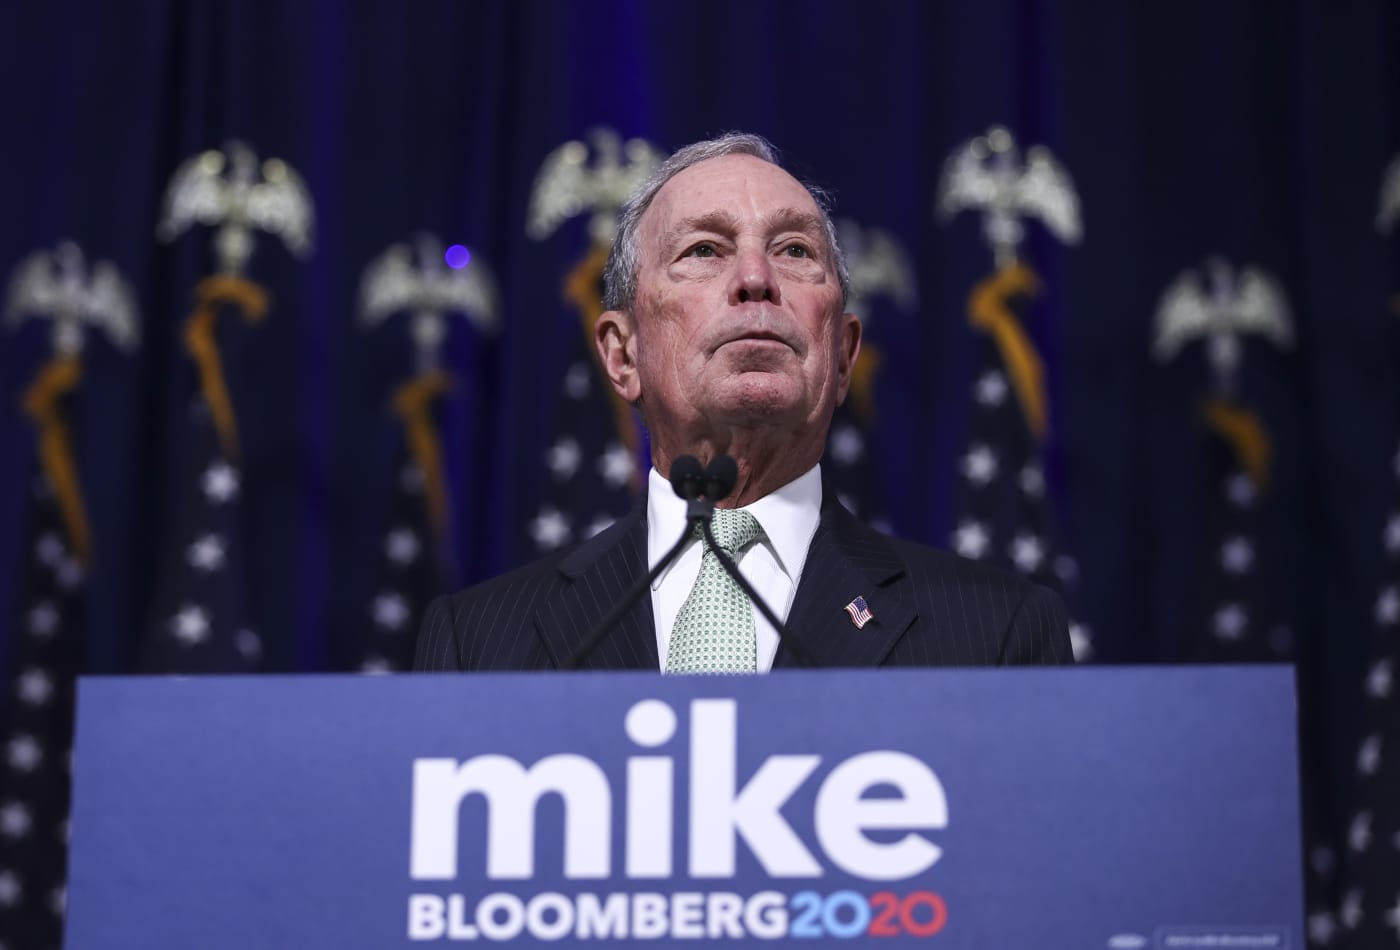 Mike Bloomberg is paying online influencers to post memes for his 2020 campaign